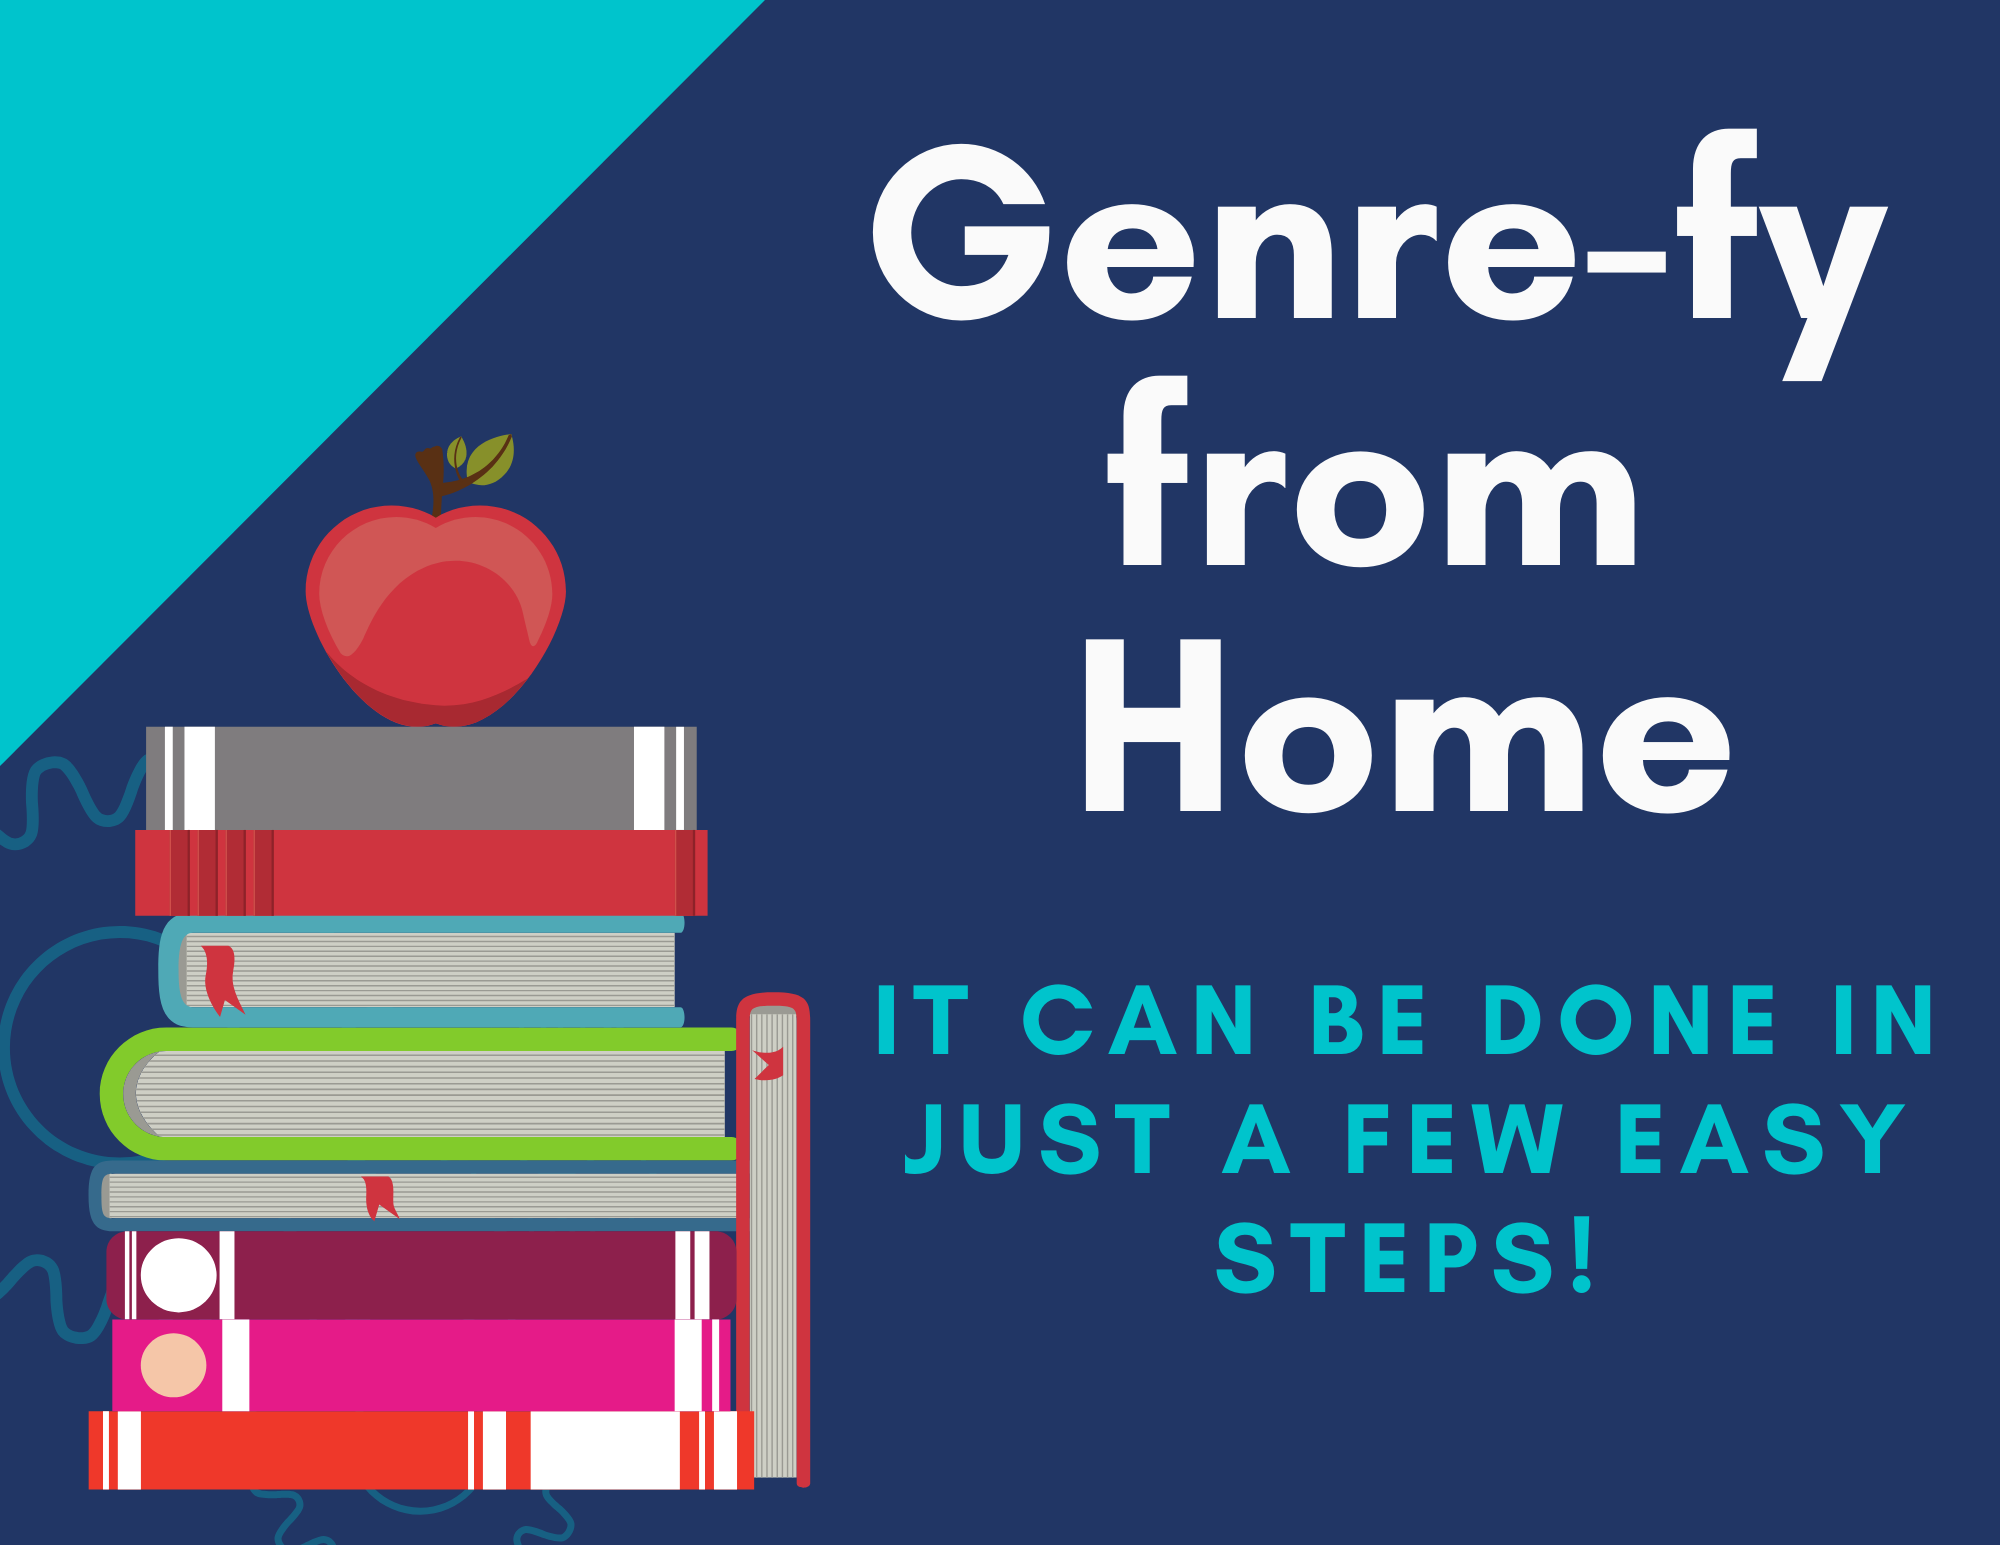 Genre-fy from Home (9)